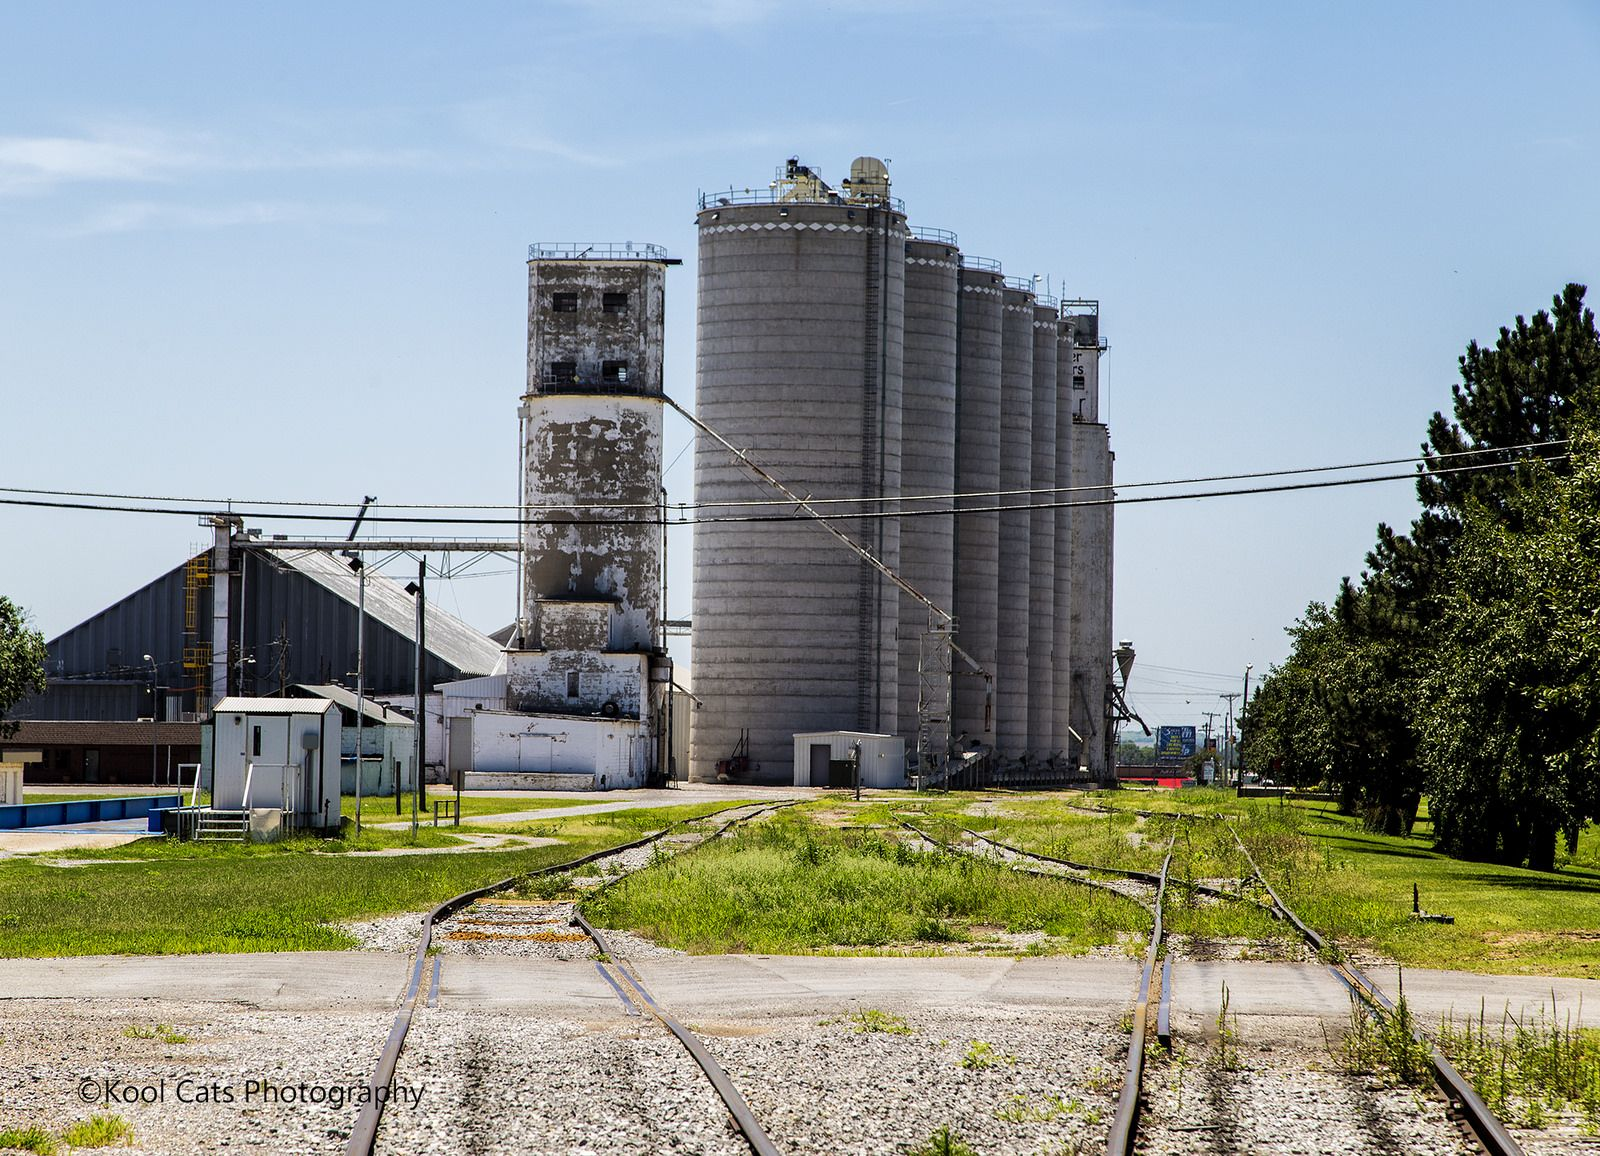 https://flic.kr/p/vKDrQo | The Silos | These old silos are used for agricultural purposes in any farming community, especially in Oklahoma.